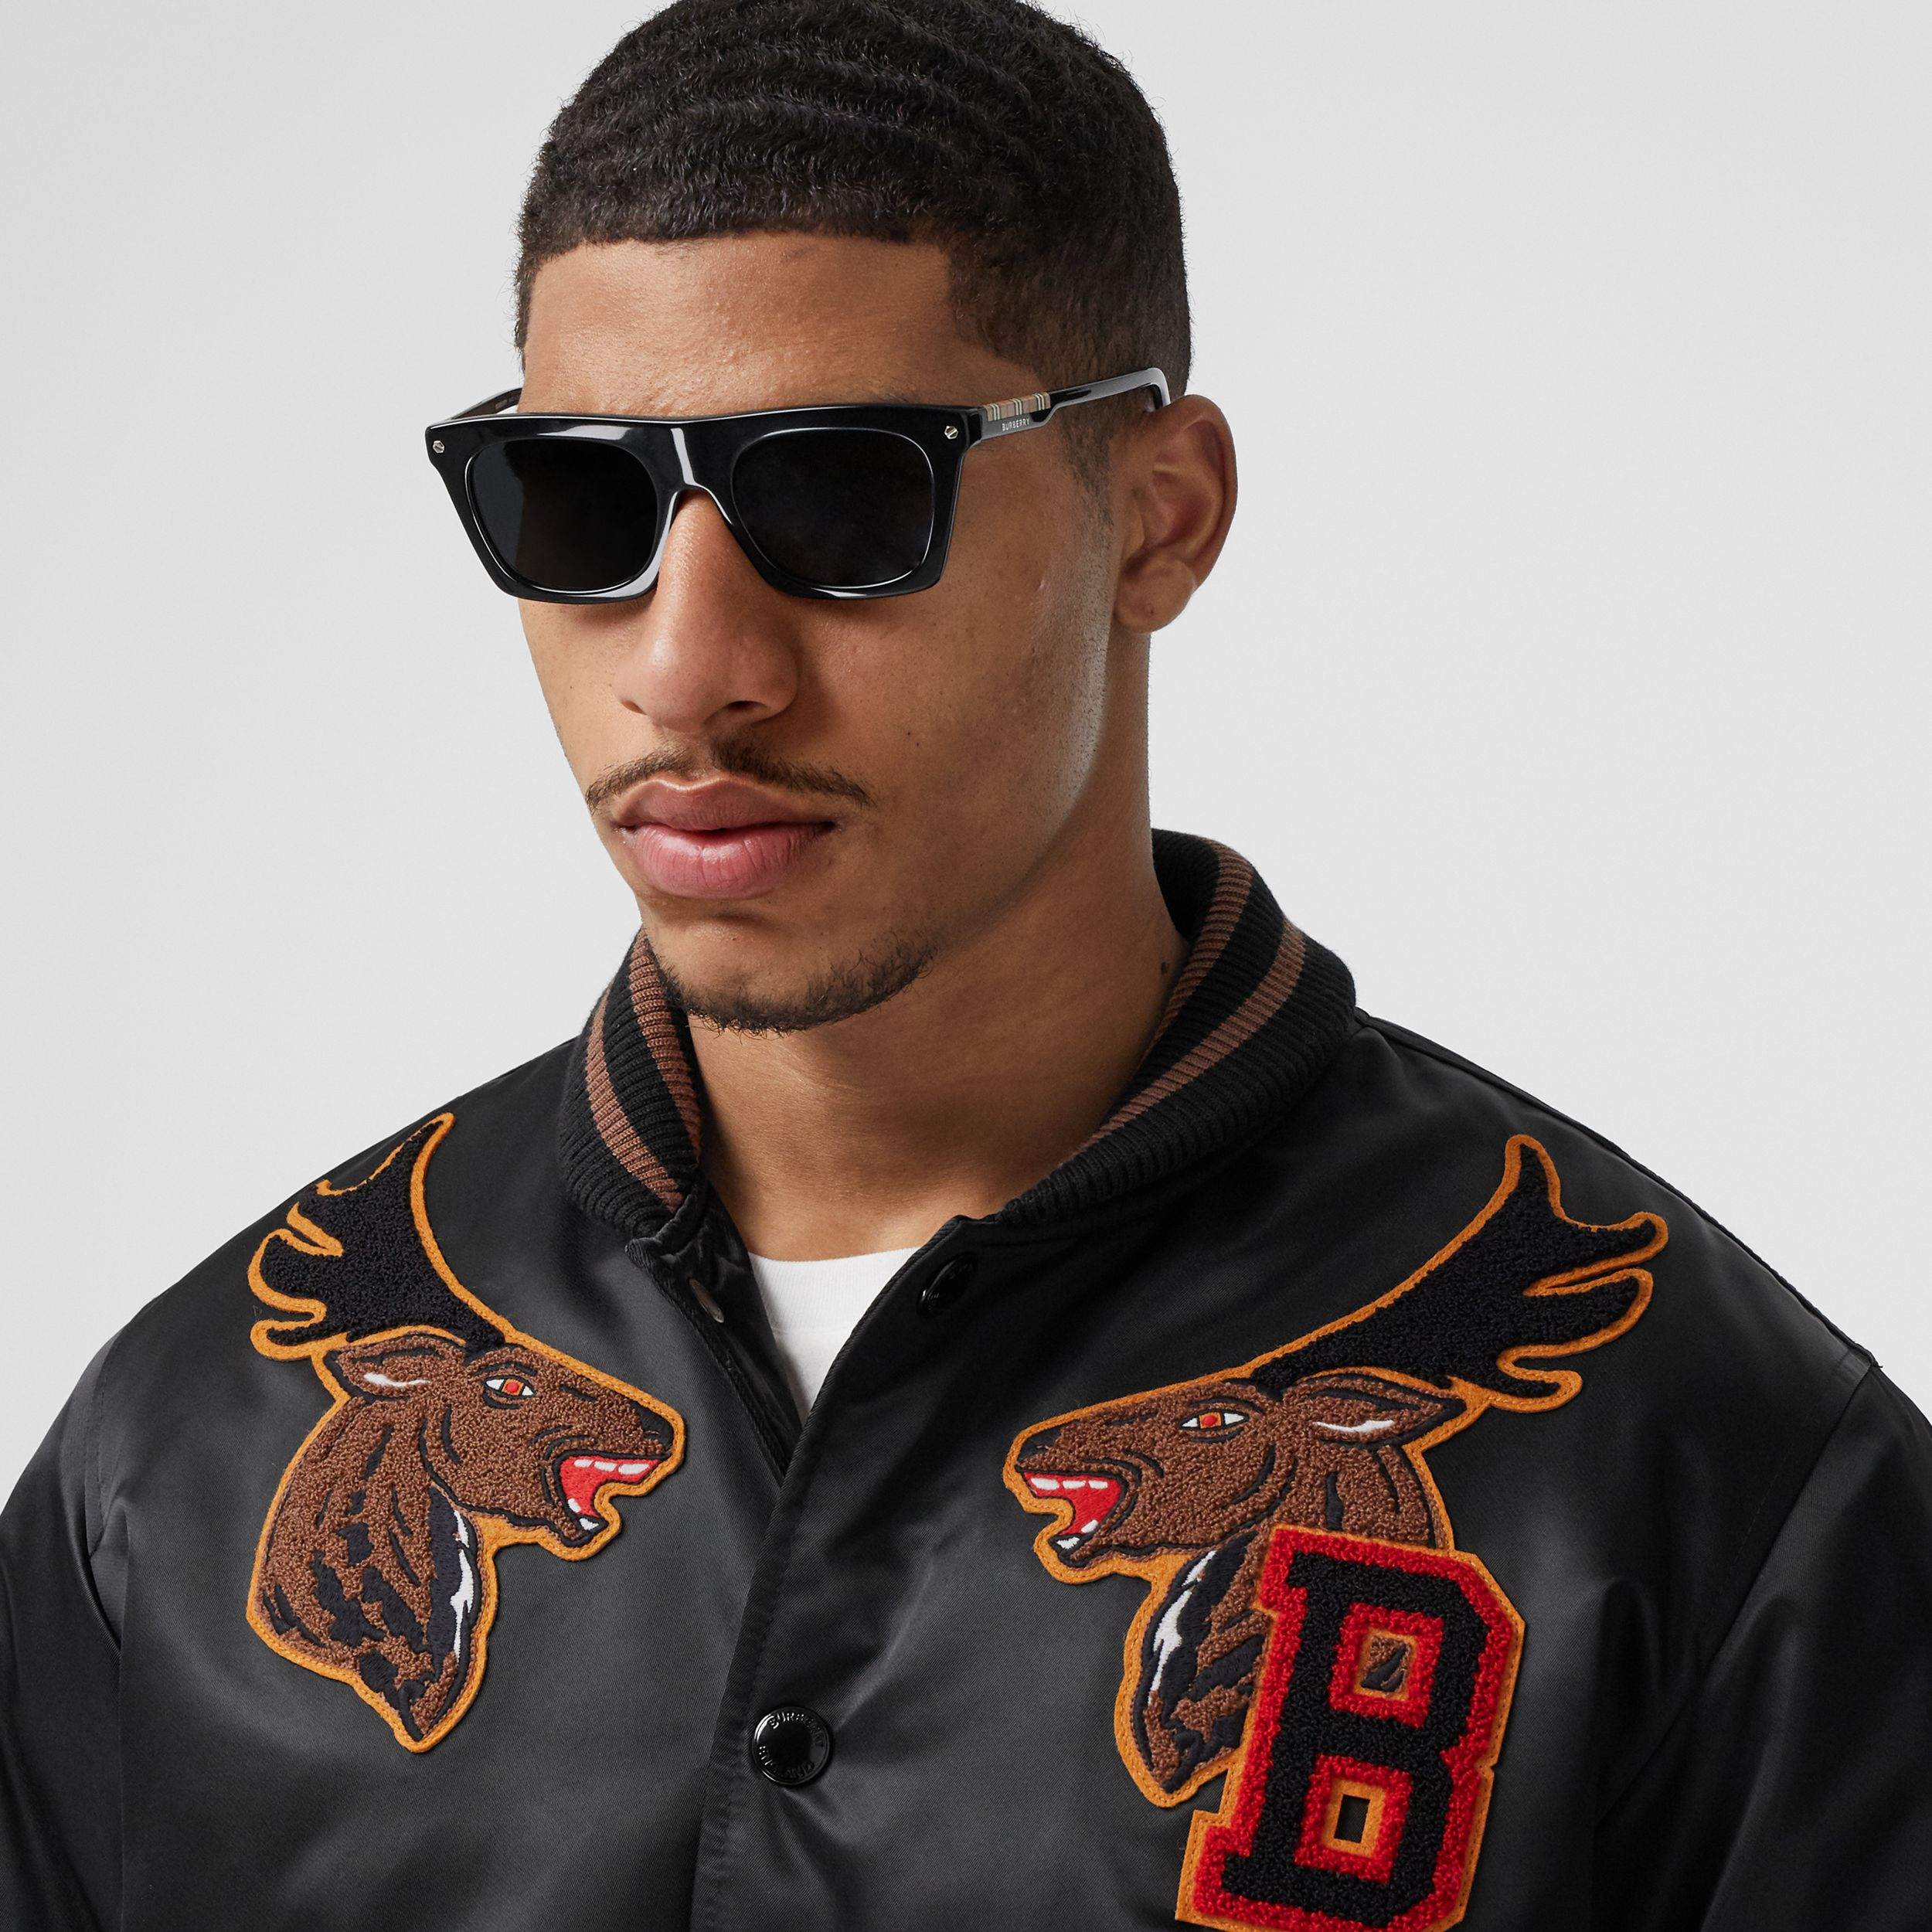 Varsity Graphic Satin Bomber Jacket in Black - Men | Burberry Australia - 2